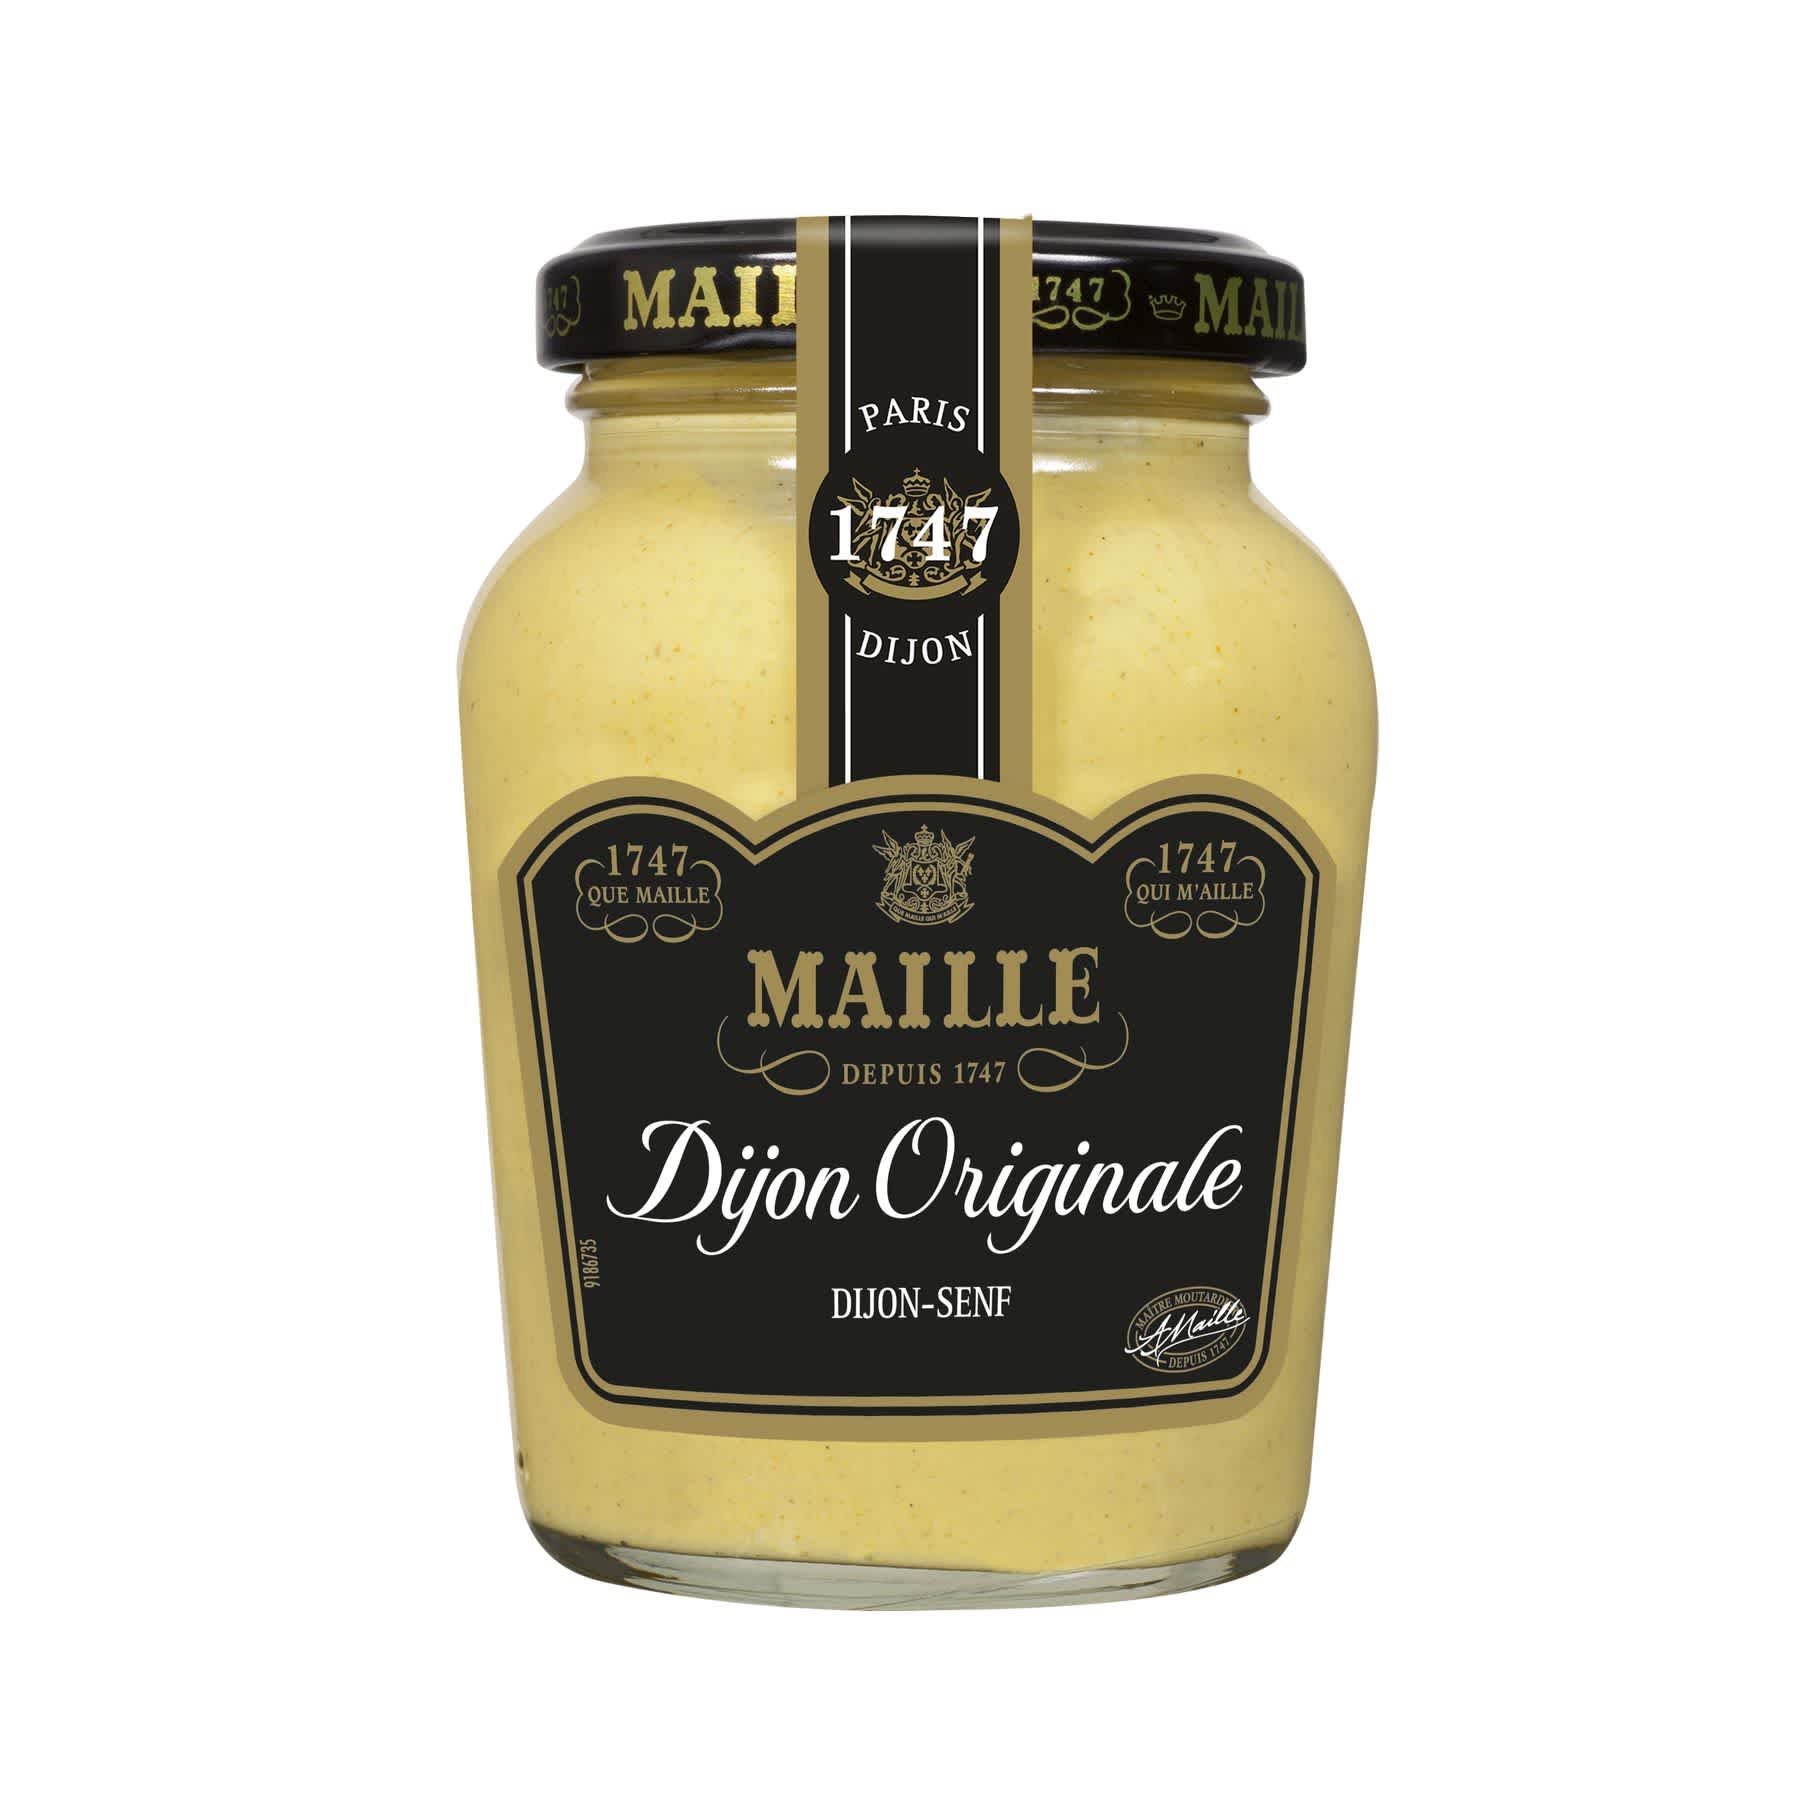 Maille Moutarde de Dijon l'Originale 215g, overview